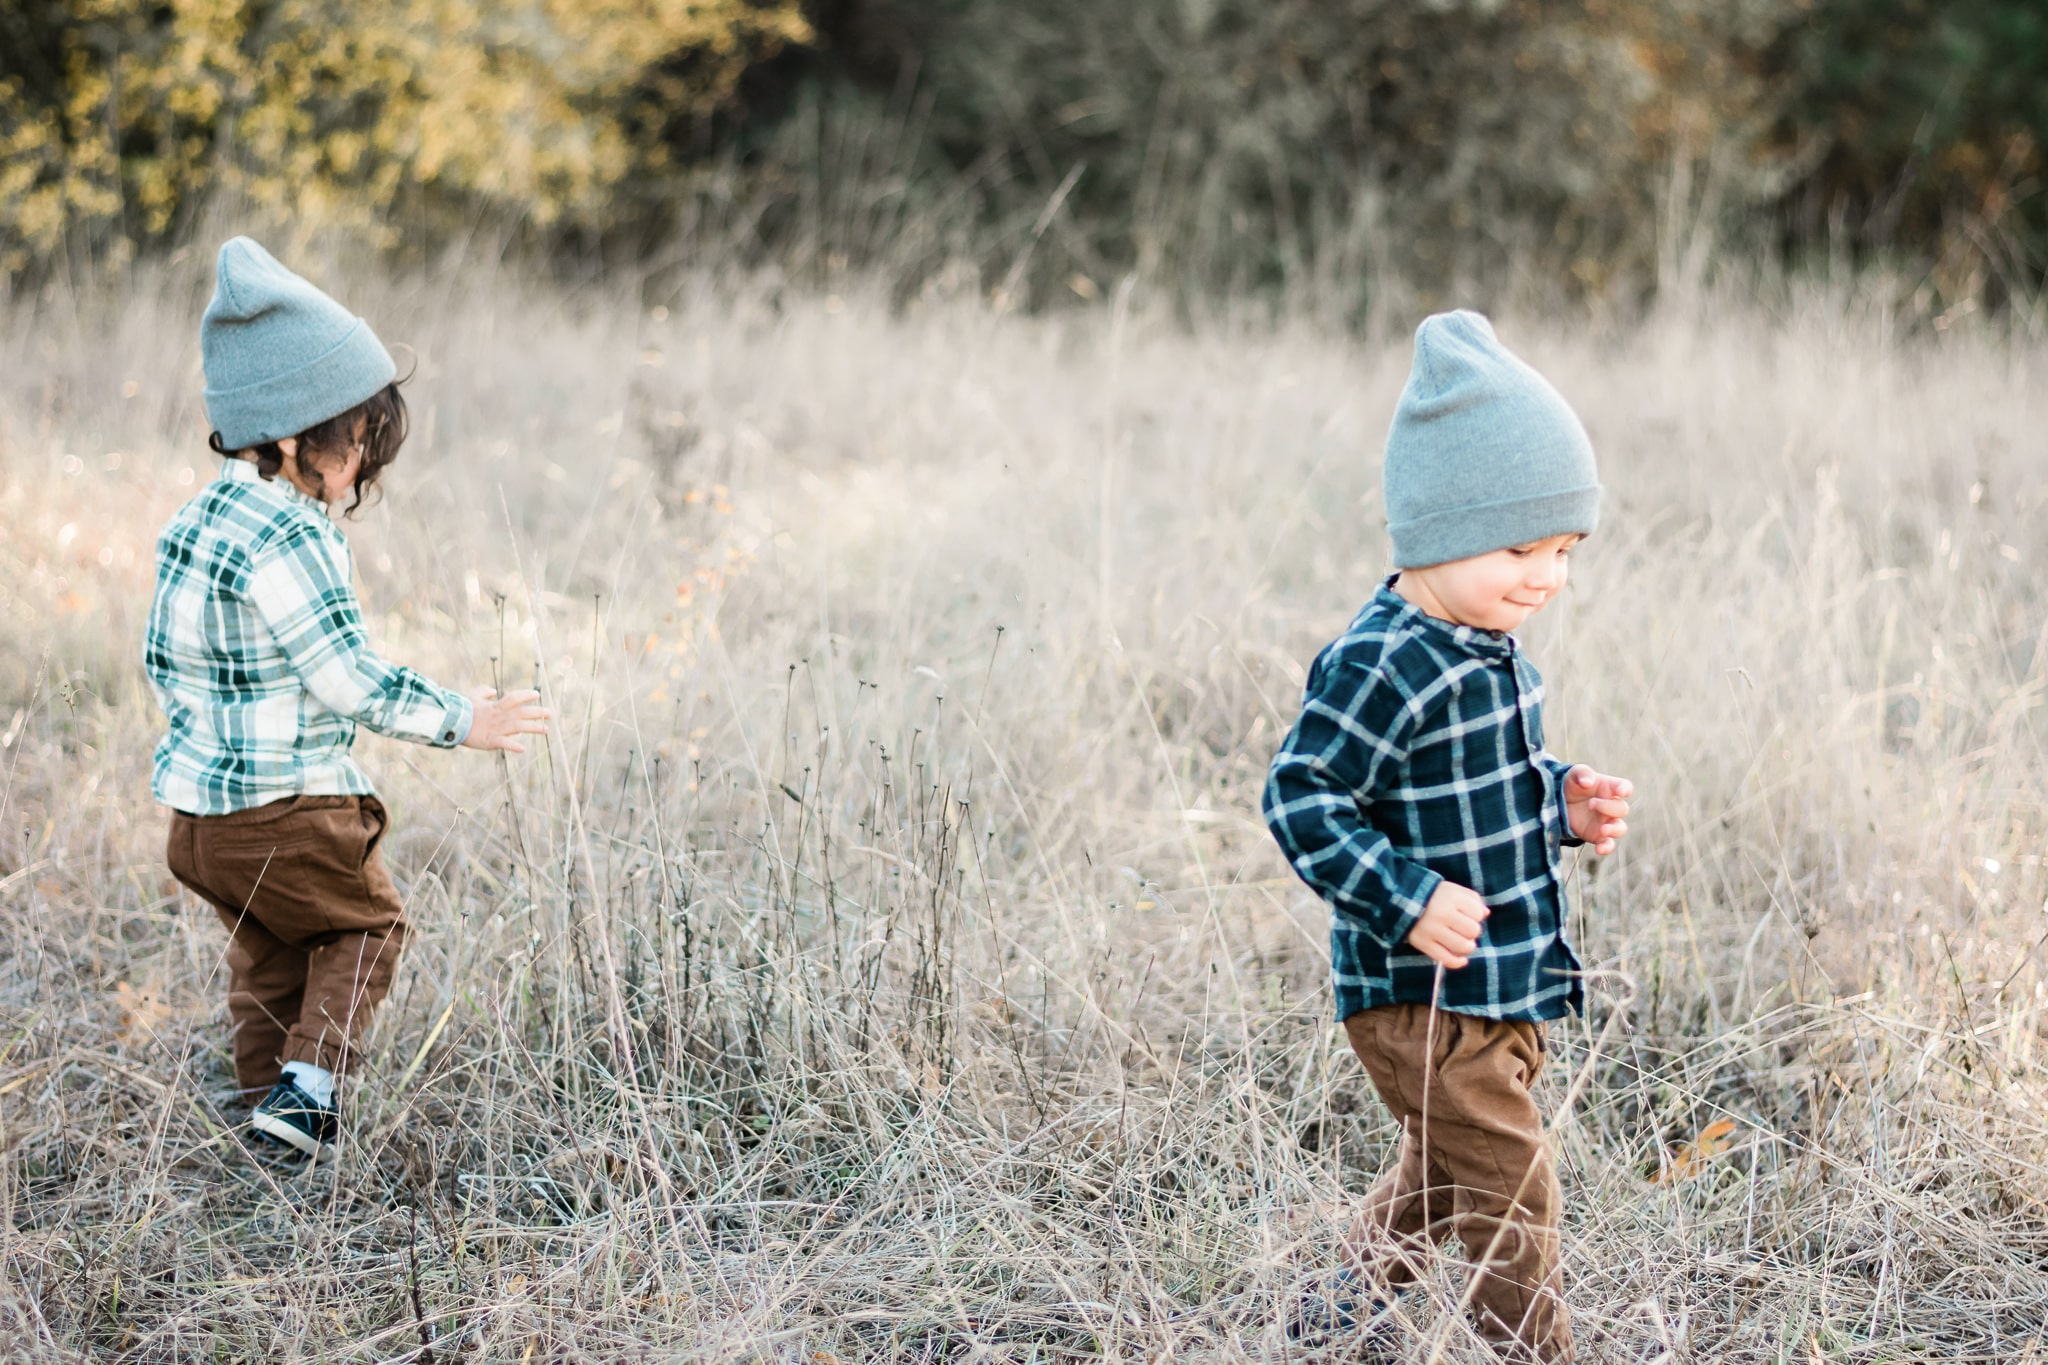 family photos with twins, summer family photos, family photography, photos with toddlers, two year old boy photoshoot, lifestyle family, photography | Portland, OR Photographer - Elizabeth Hite Photography